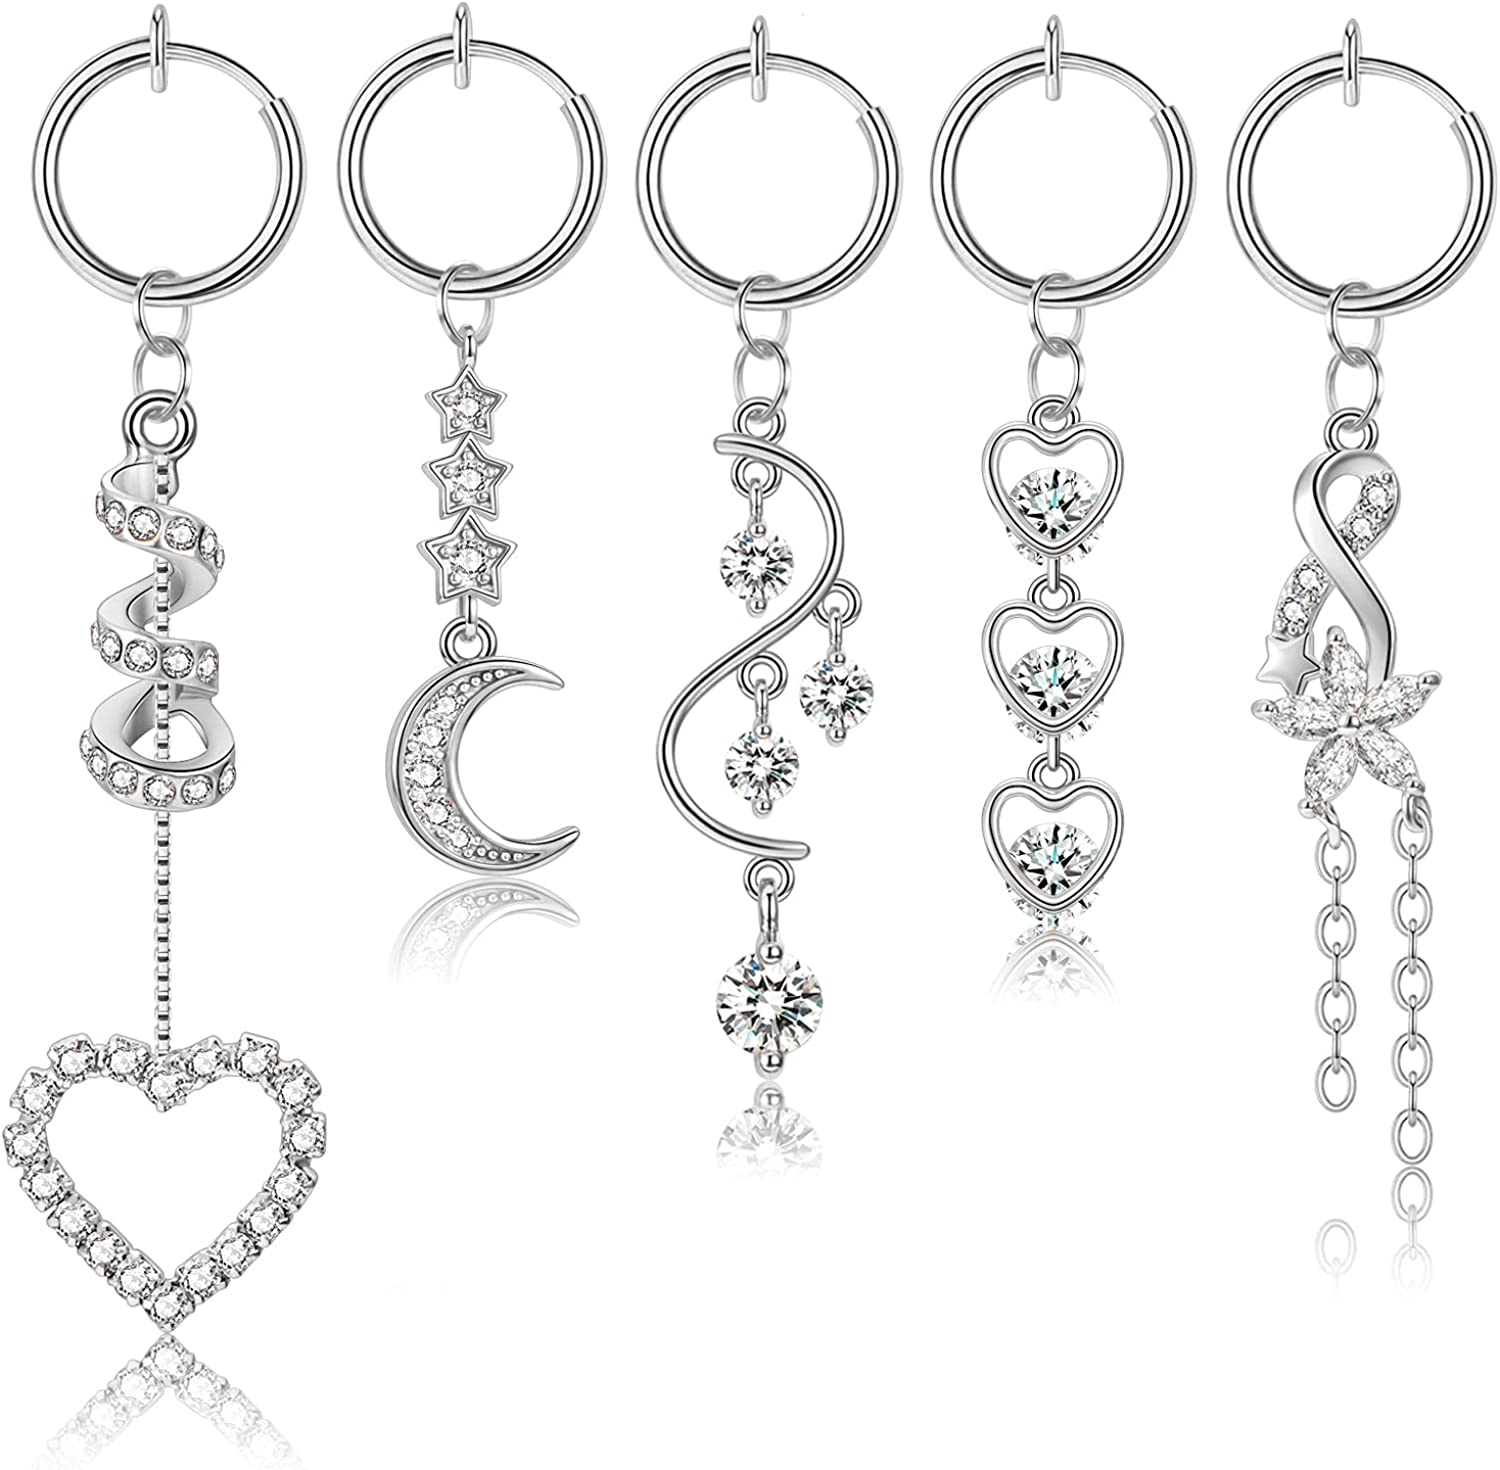 YOVORO 5Pcs Stainless Steel Fake Belly Rings for Women Girls Clip on Belly Button Rings Non Piercing Faux Navel Rings